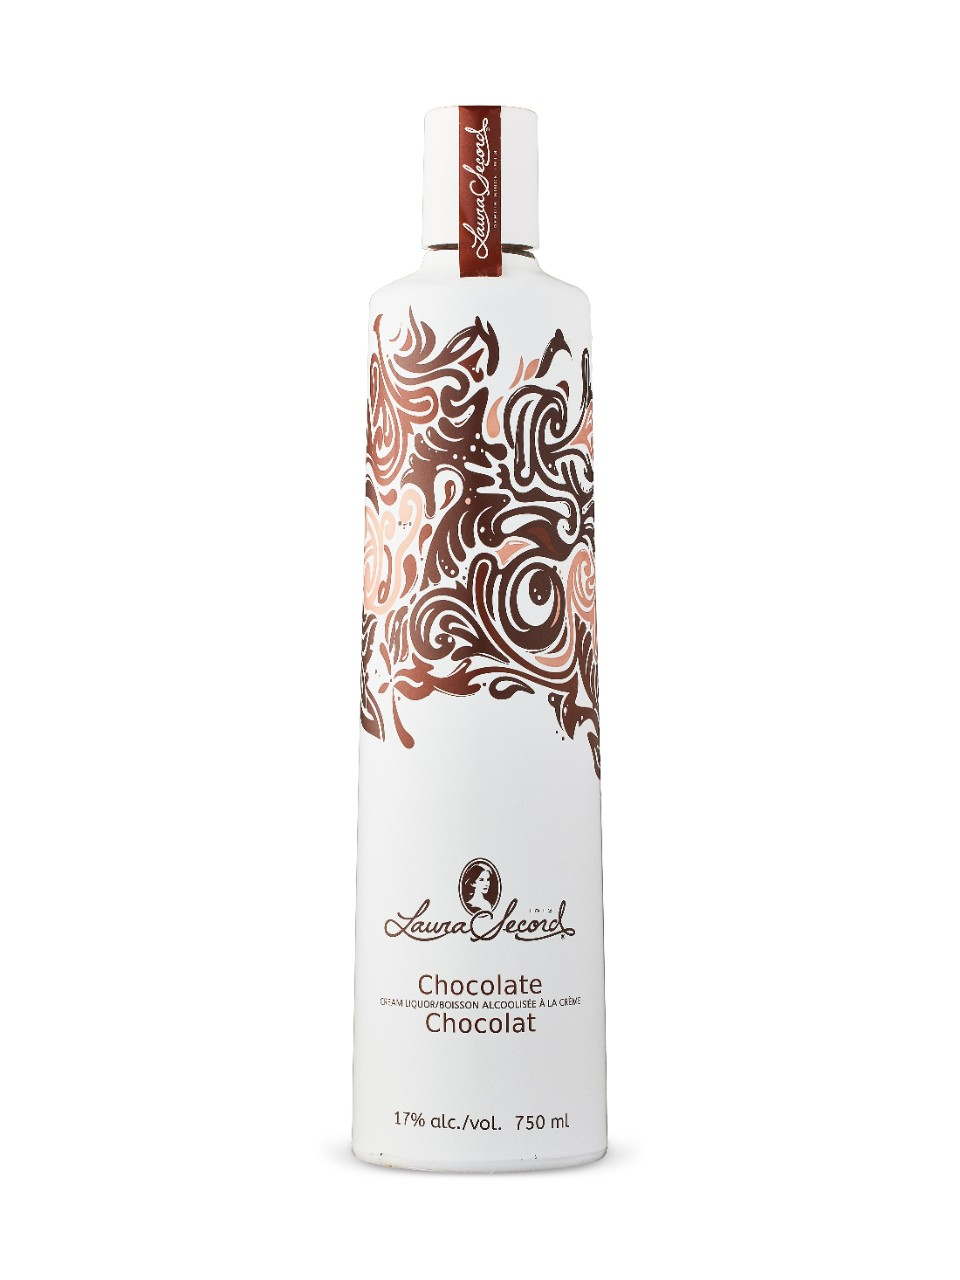 Laura Secord Chocolate Cream Liquor